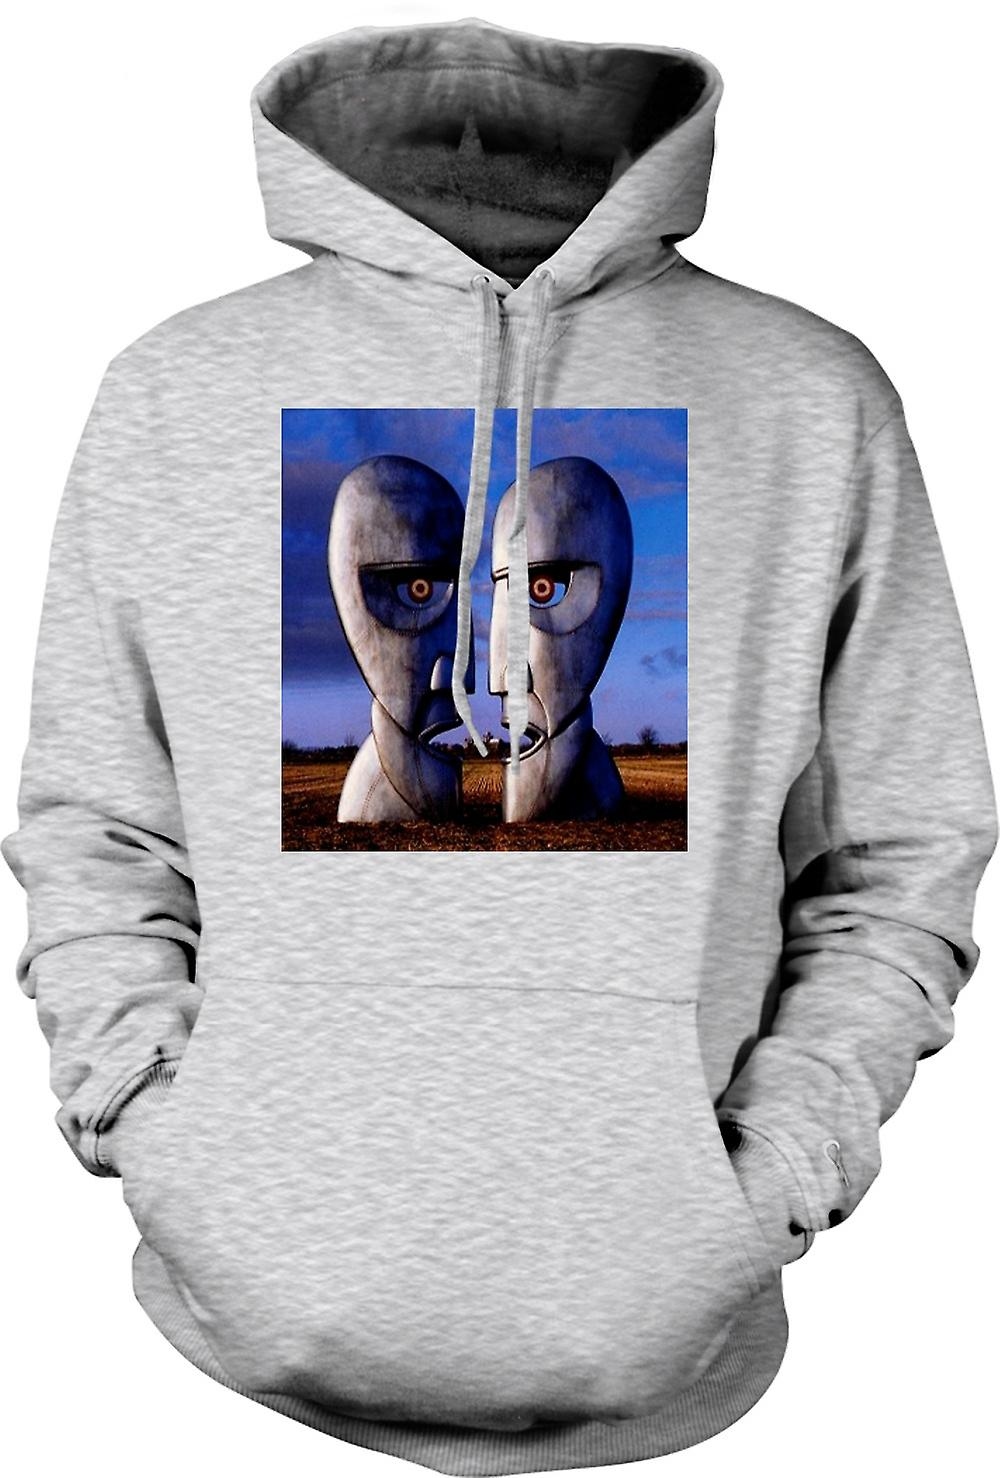 Mens Hoodie - Pink Floyd - Delicate Sounds Of Thunder